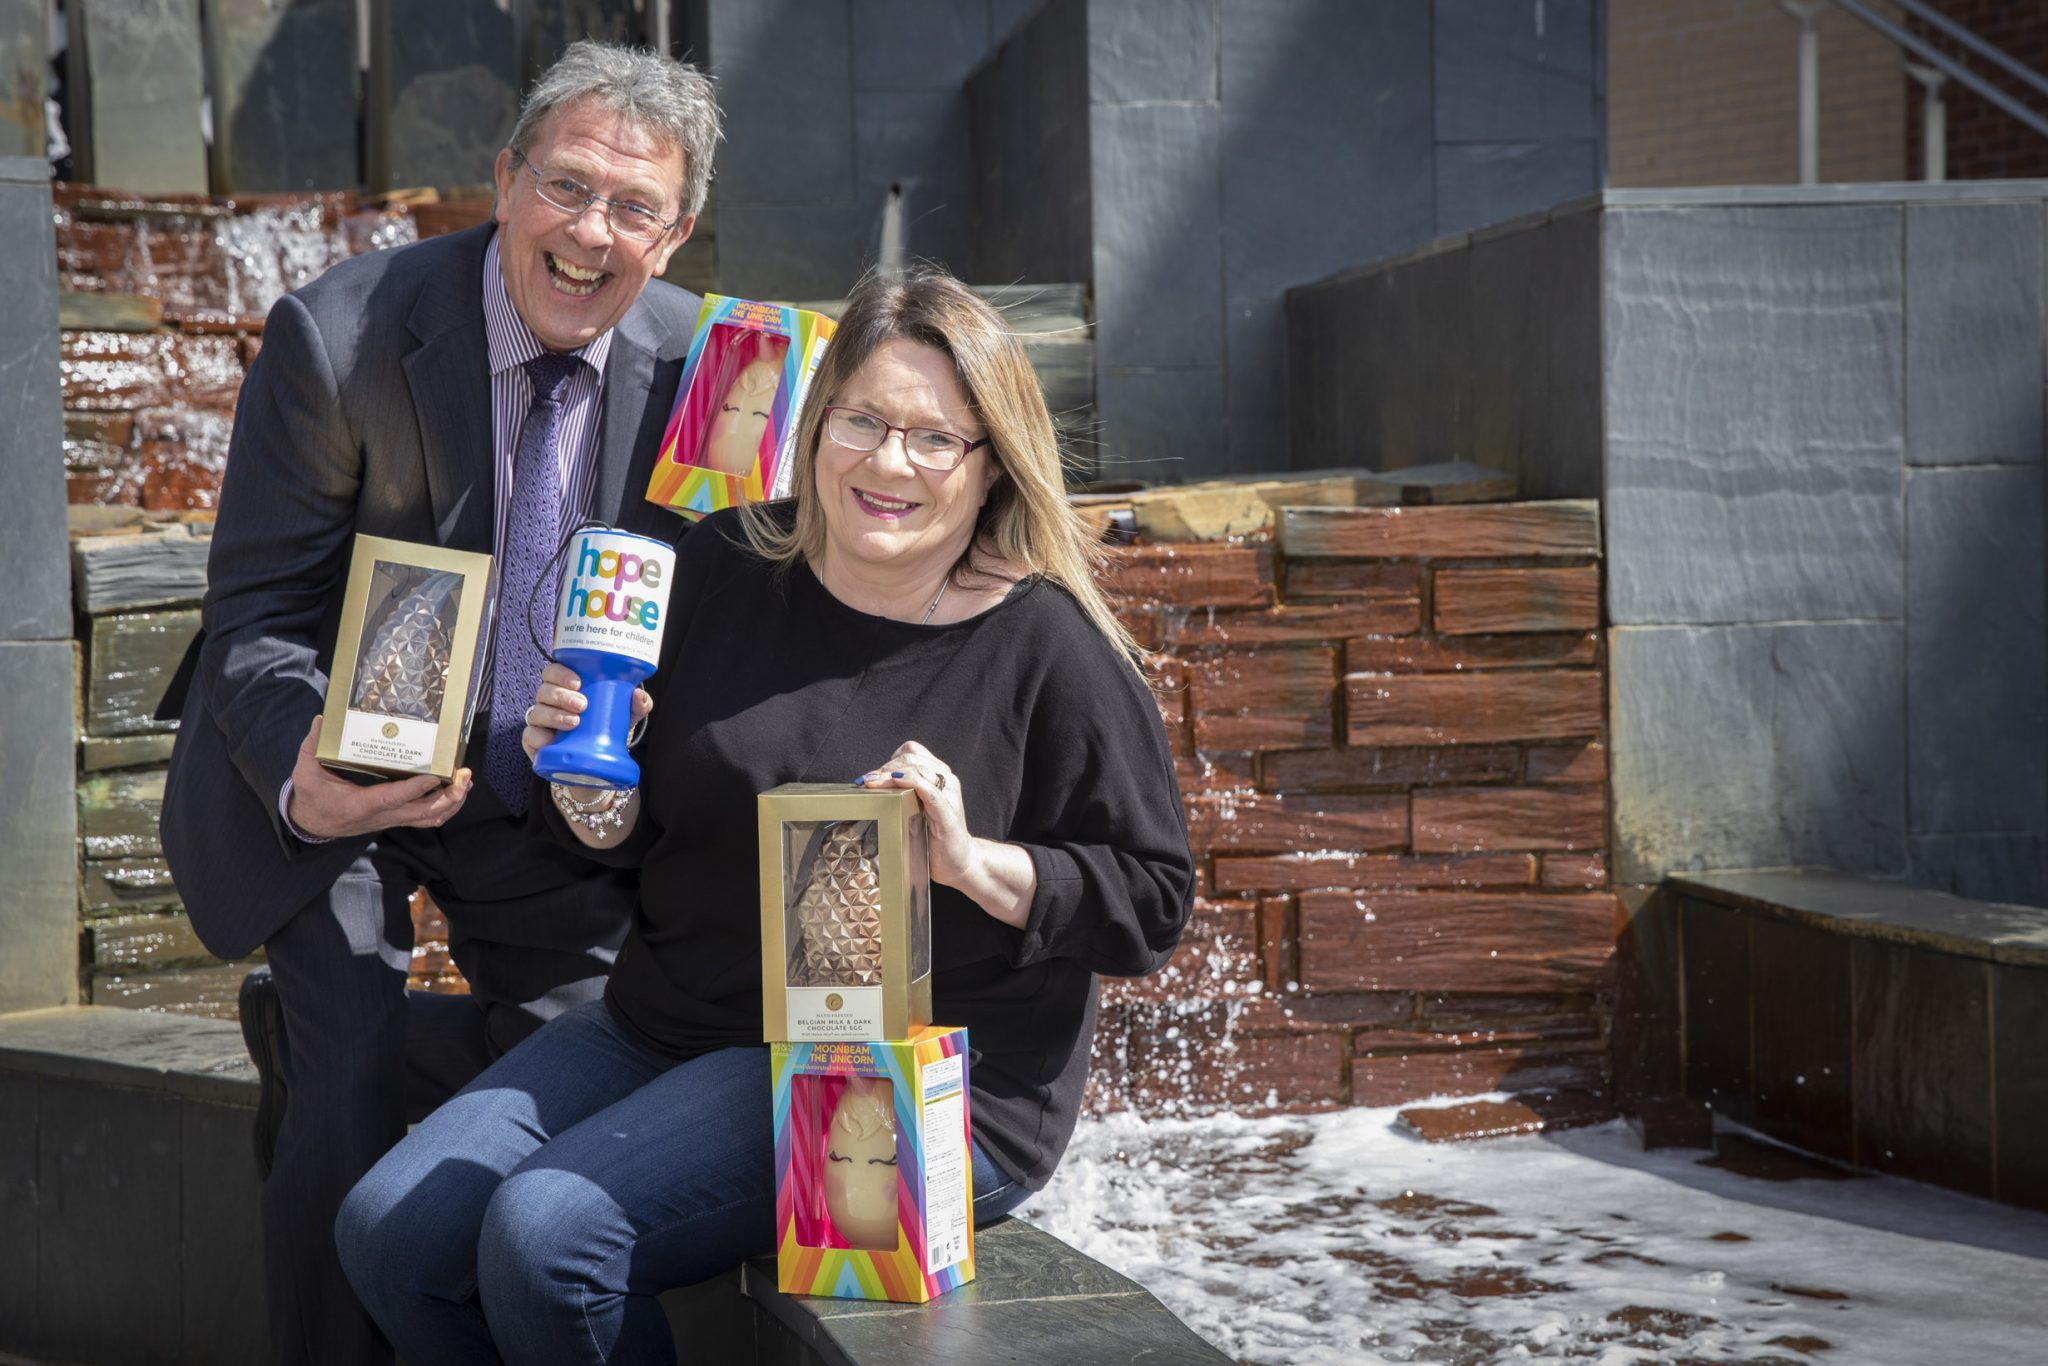 Easter eggs-travaganza at Eagles Meadow will boost children's hospice